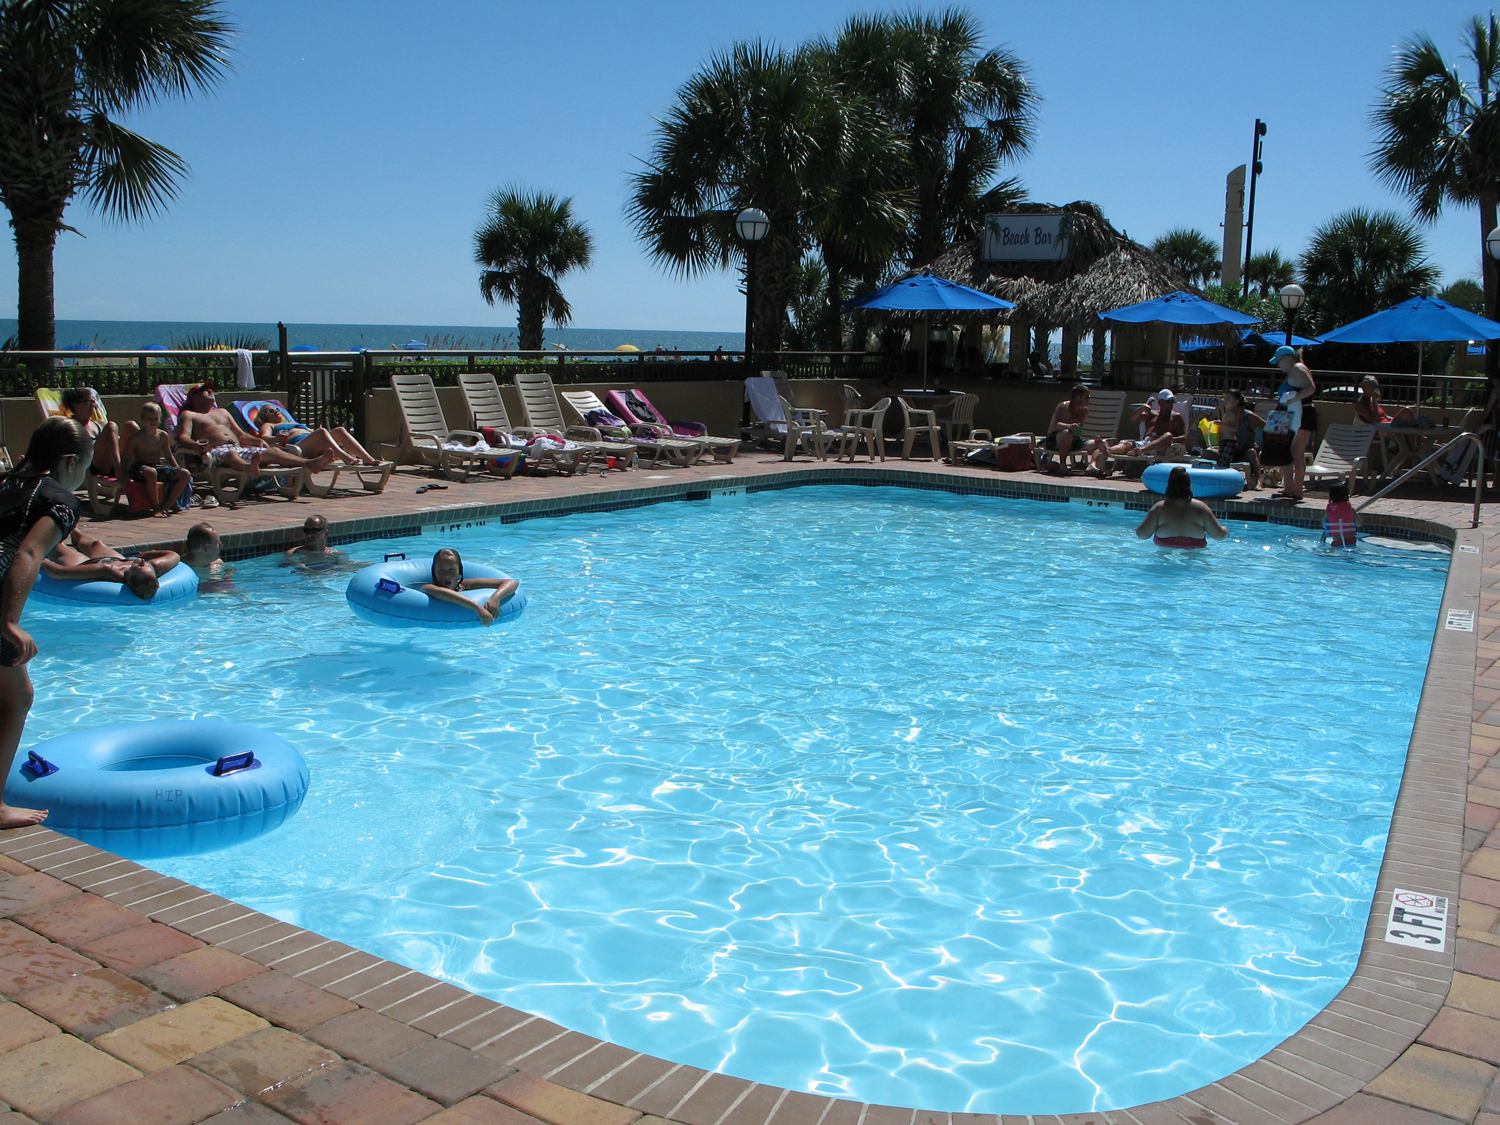 Holiday Inn at the Pavilion outdoor pool & beach bar